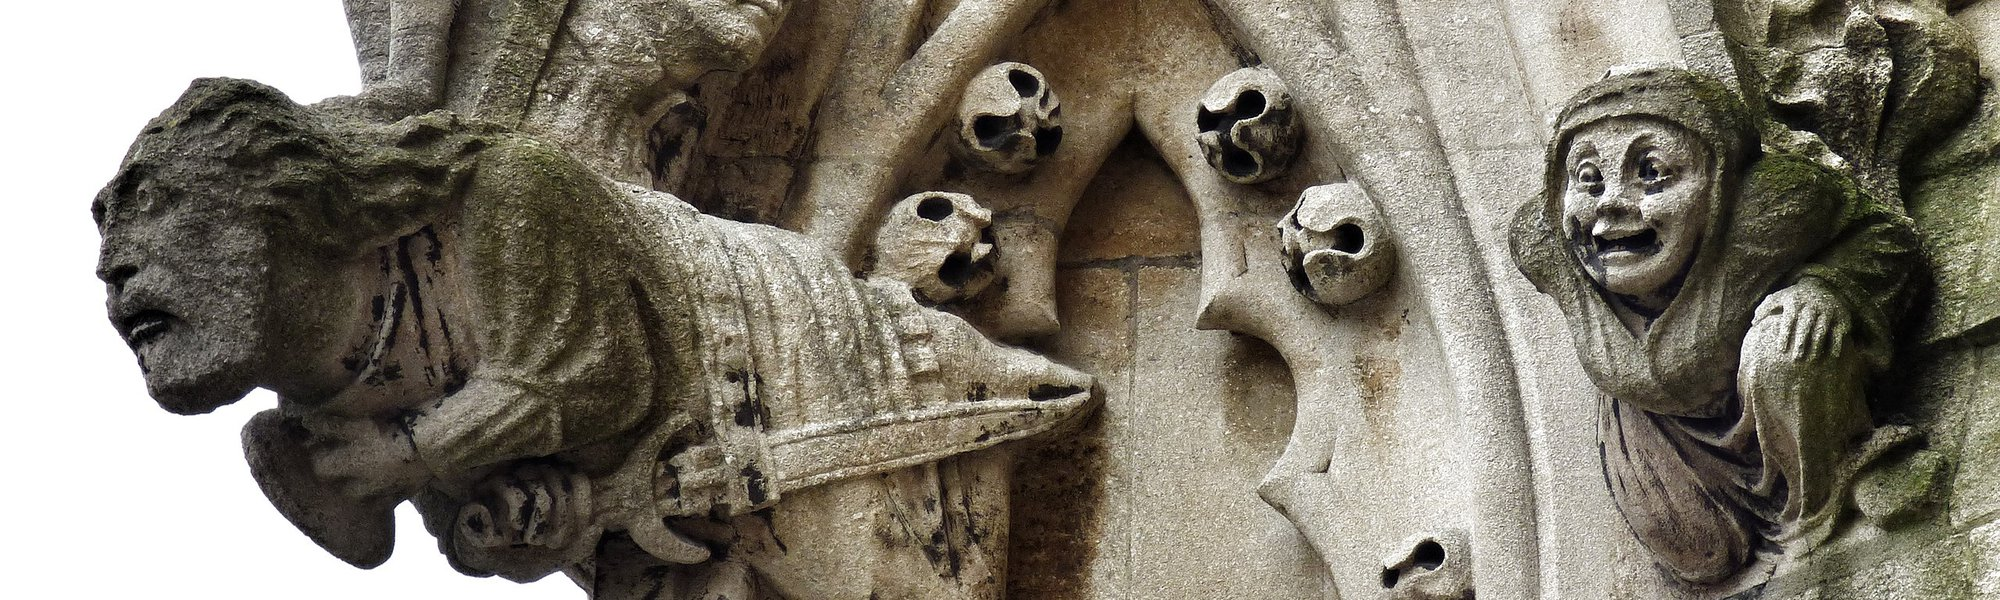 Gargoyles on the tower at the University Church of St. Mary the Virgin, Oxford